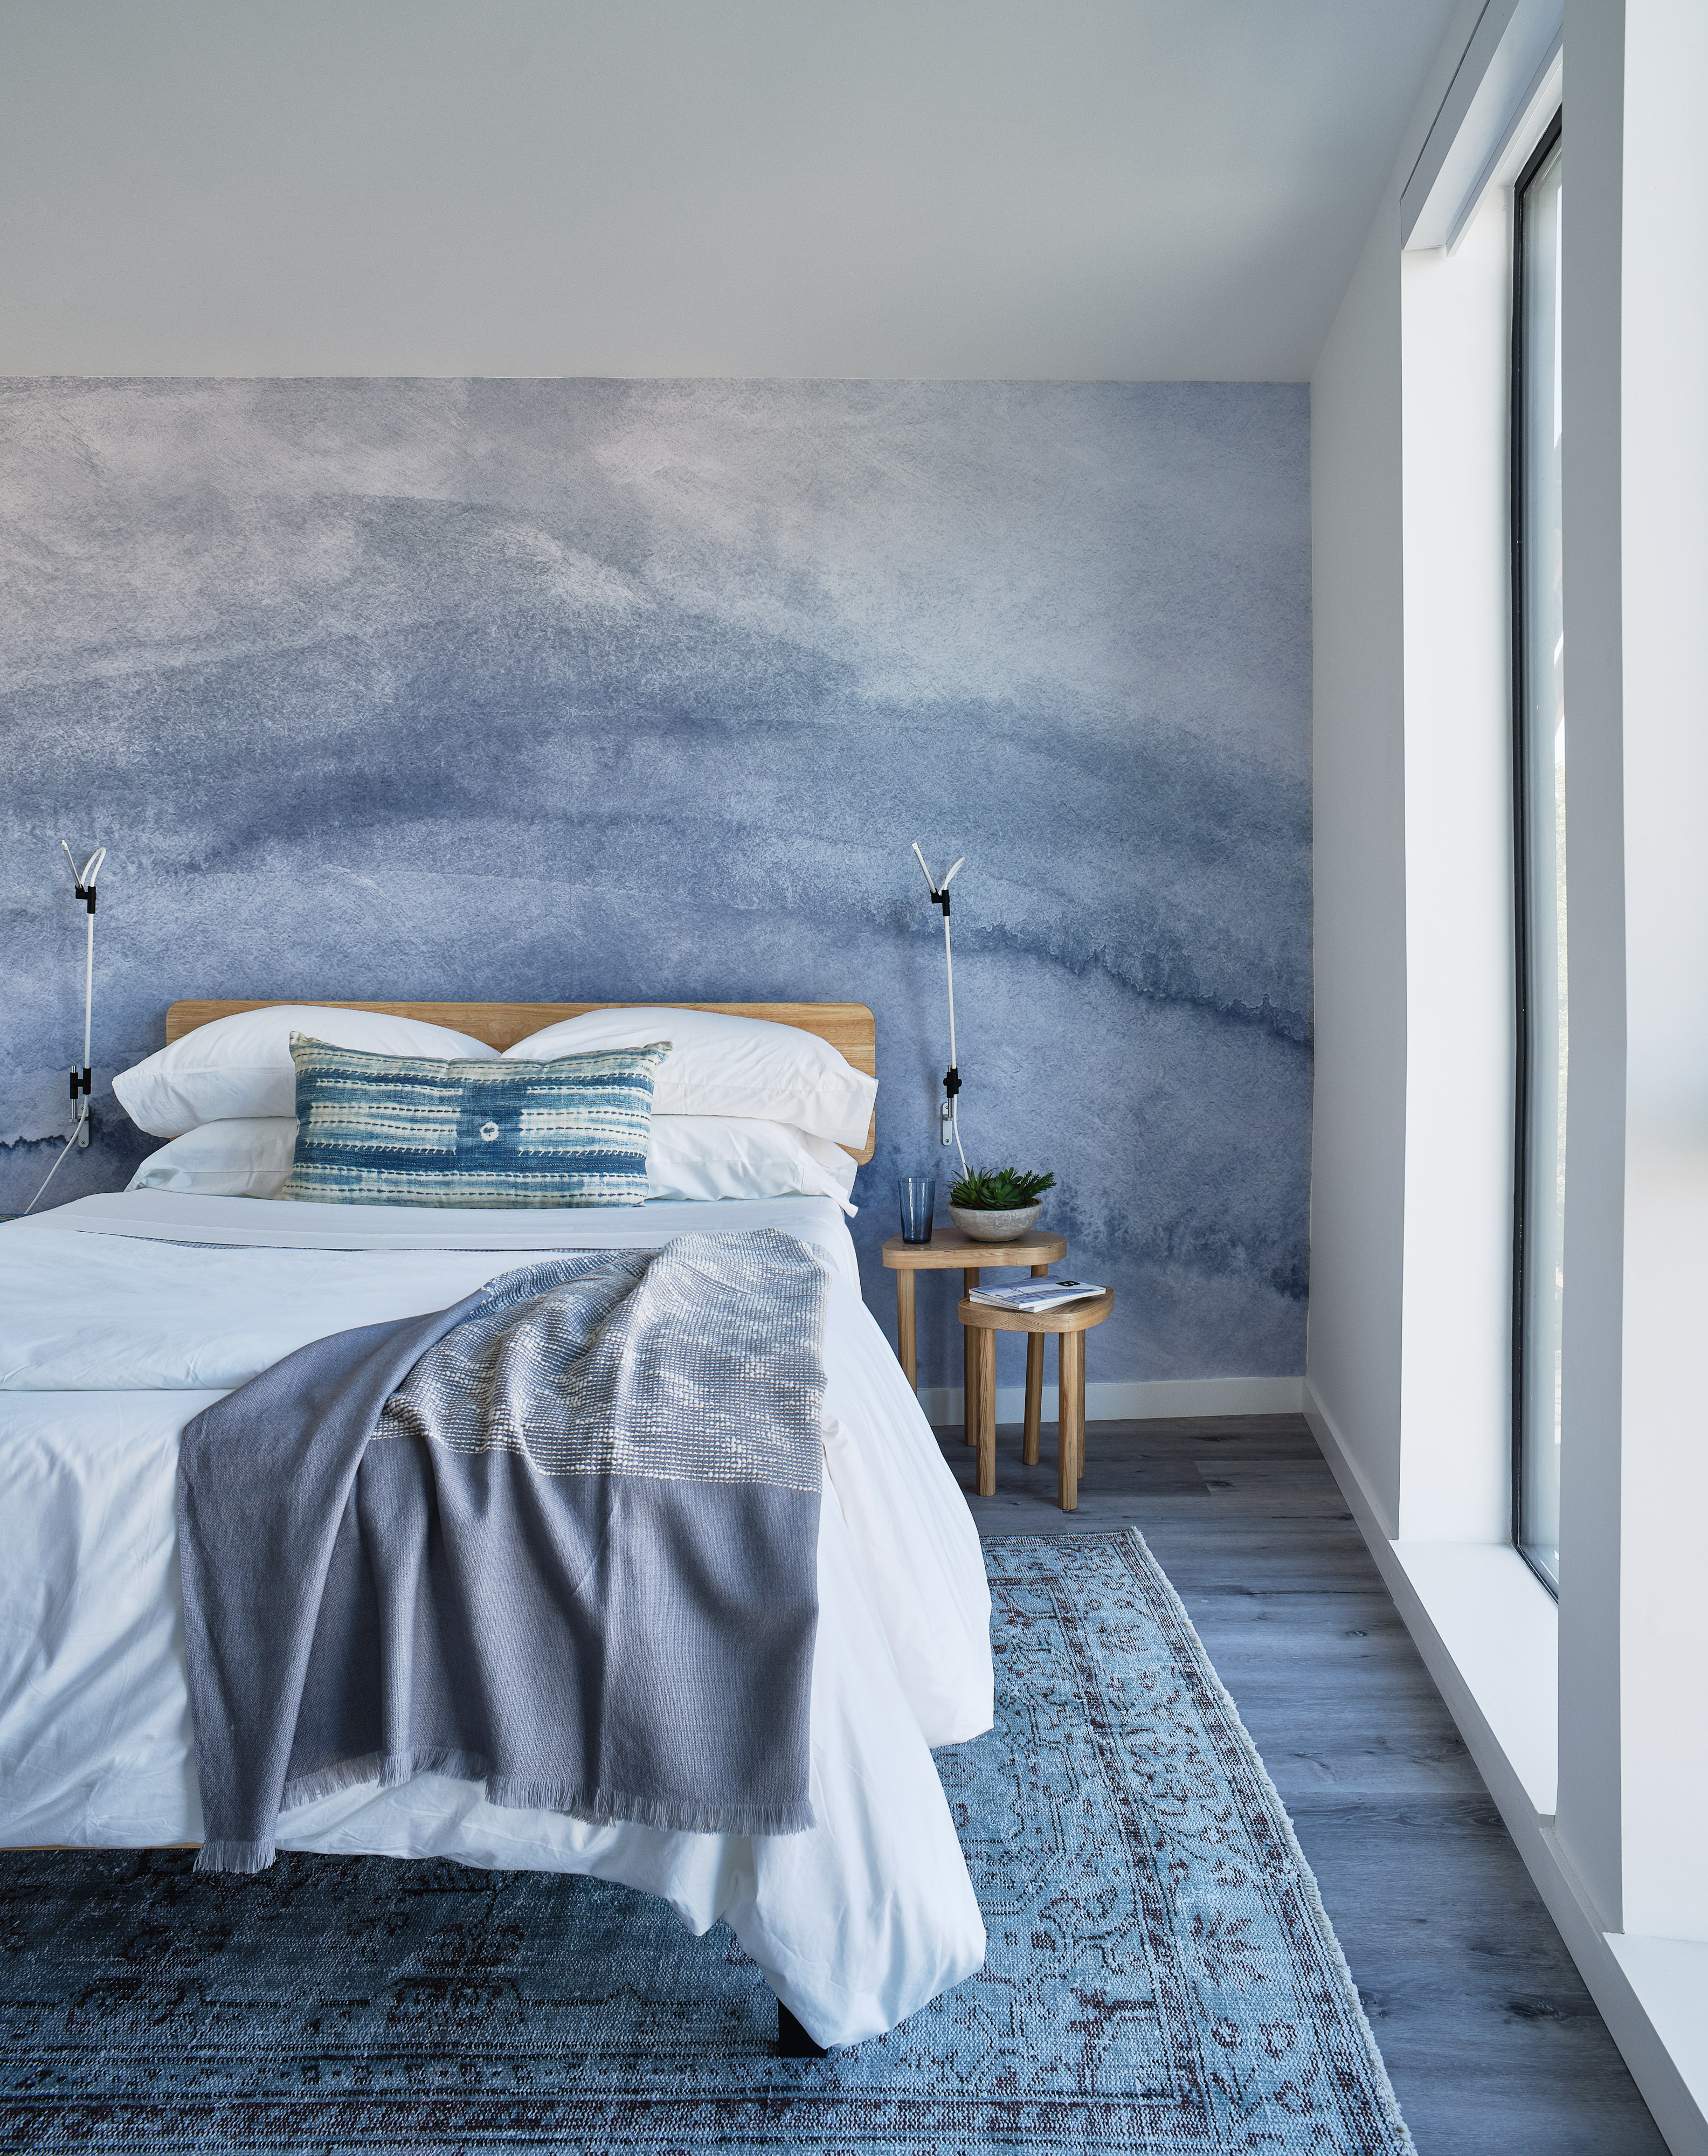 Shop for KAILU raw silk Heritage Duvets, featured inside the main bedroom at 188 Octavia in Hayes Valley, San Francisco, California. Staging by Batch.